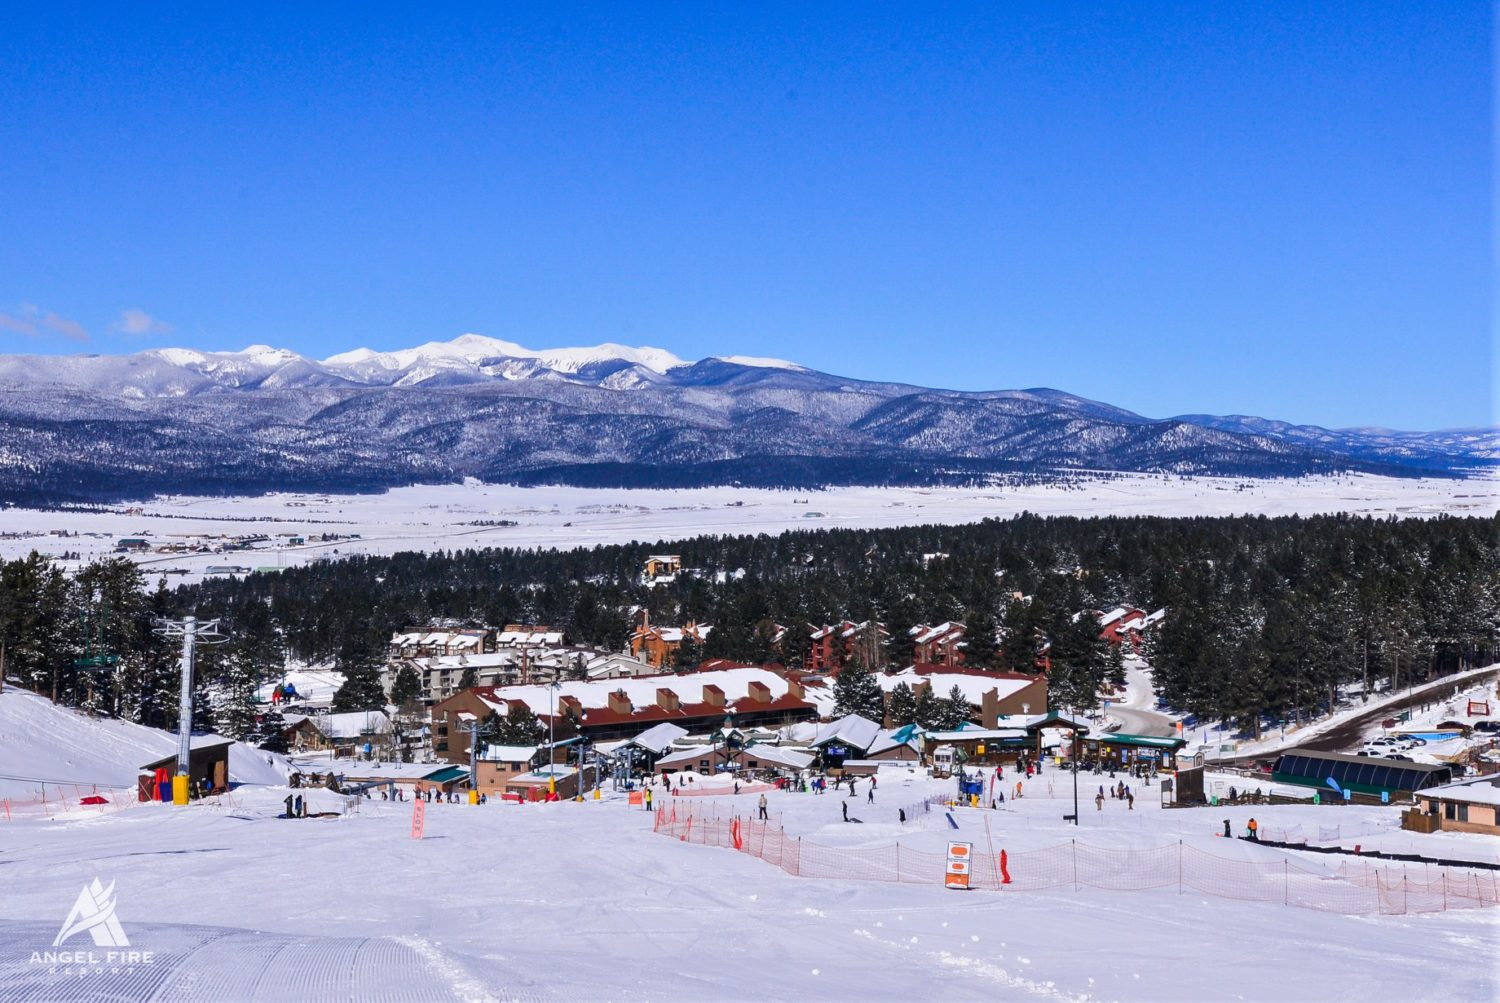 Angel Fire looks like an awesome place to ski - even better if it's only $99 for the season